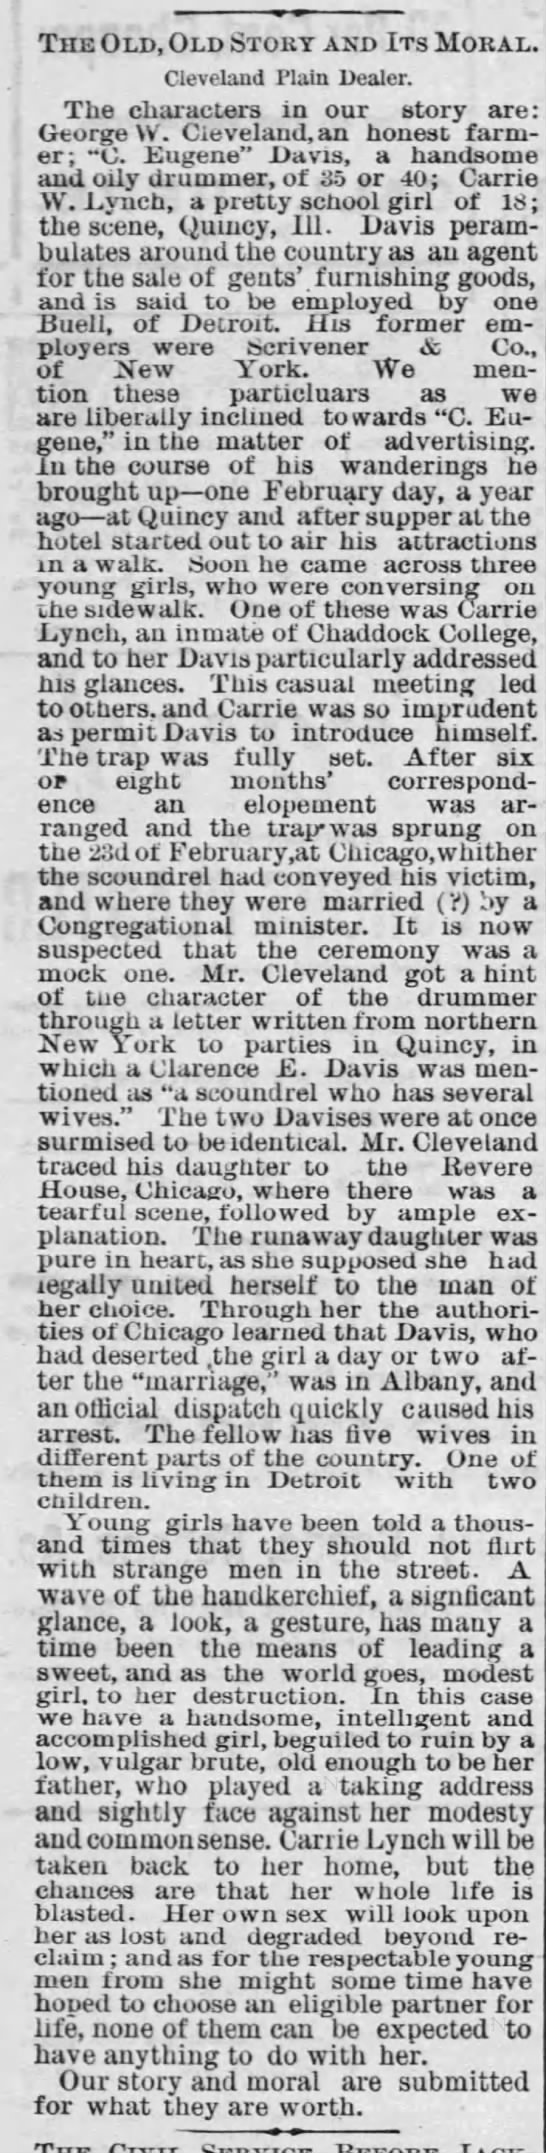 March 24, 1880 The Summit County Beacon (Akron, OH) The Old, Old Story and Its Moral -